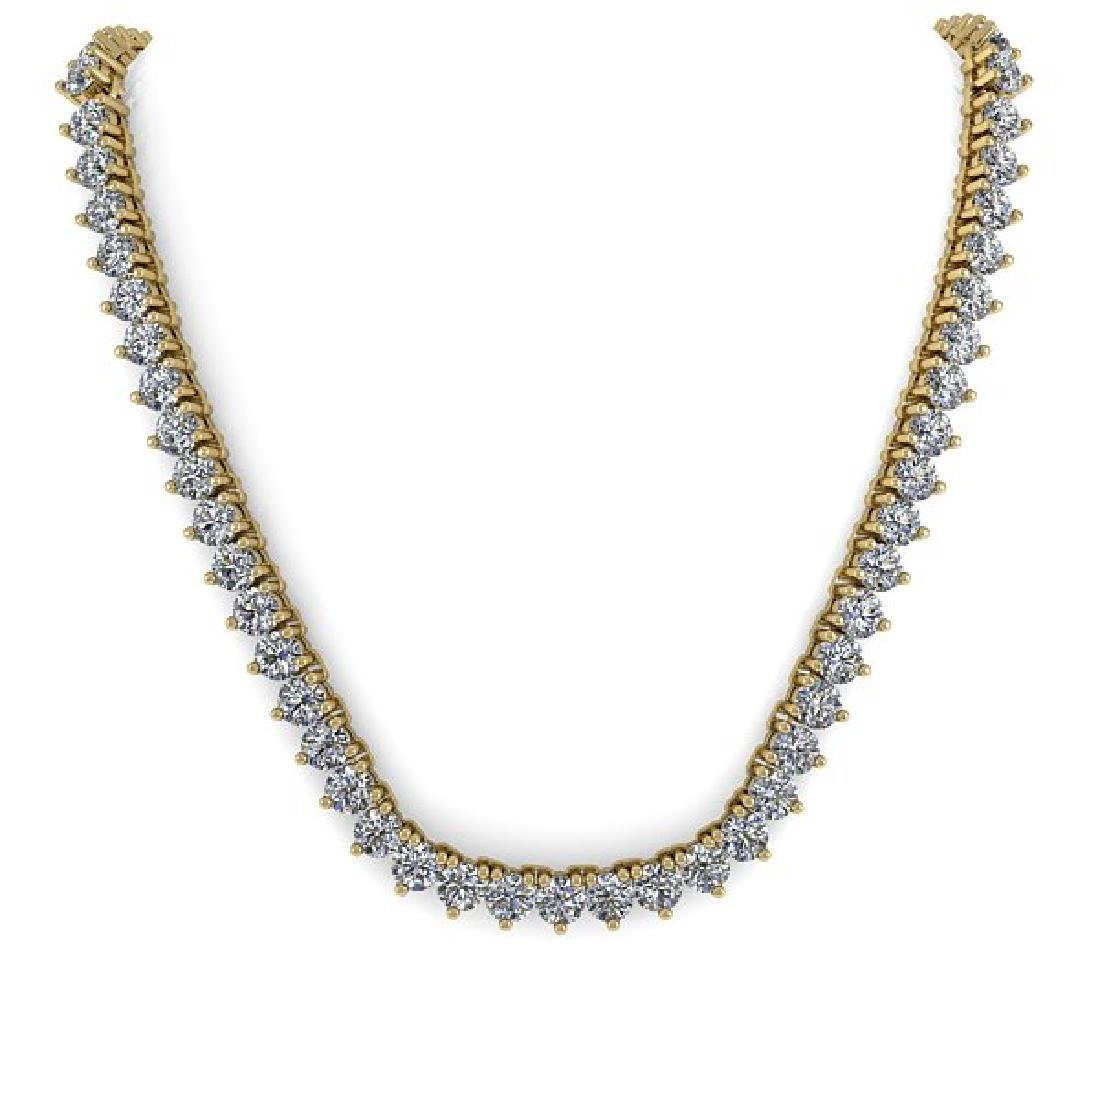 57 CTW Solitaire Certified SI Diamond Necklace 14K - 2